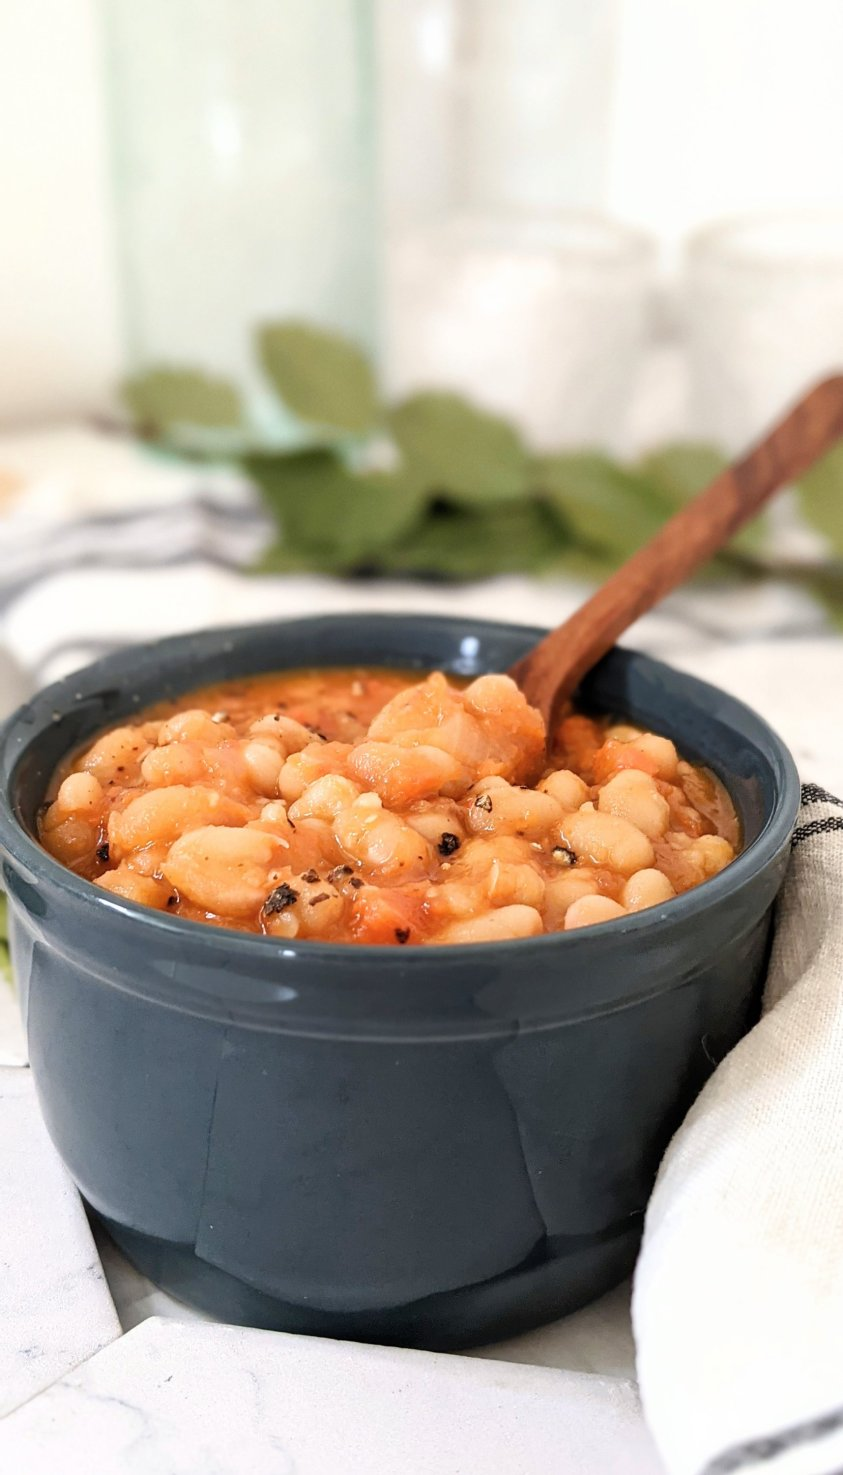 pressure cooker english baked beans recipe vegan instant pot british baked beans cooked from dried beans navy beans vegan recipes